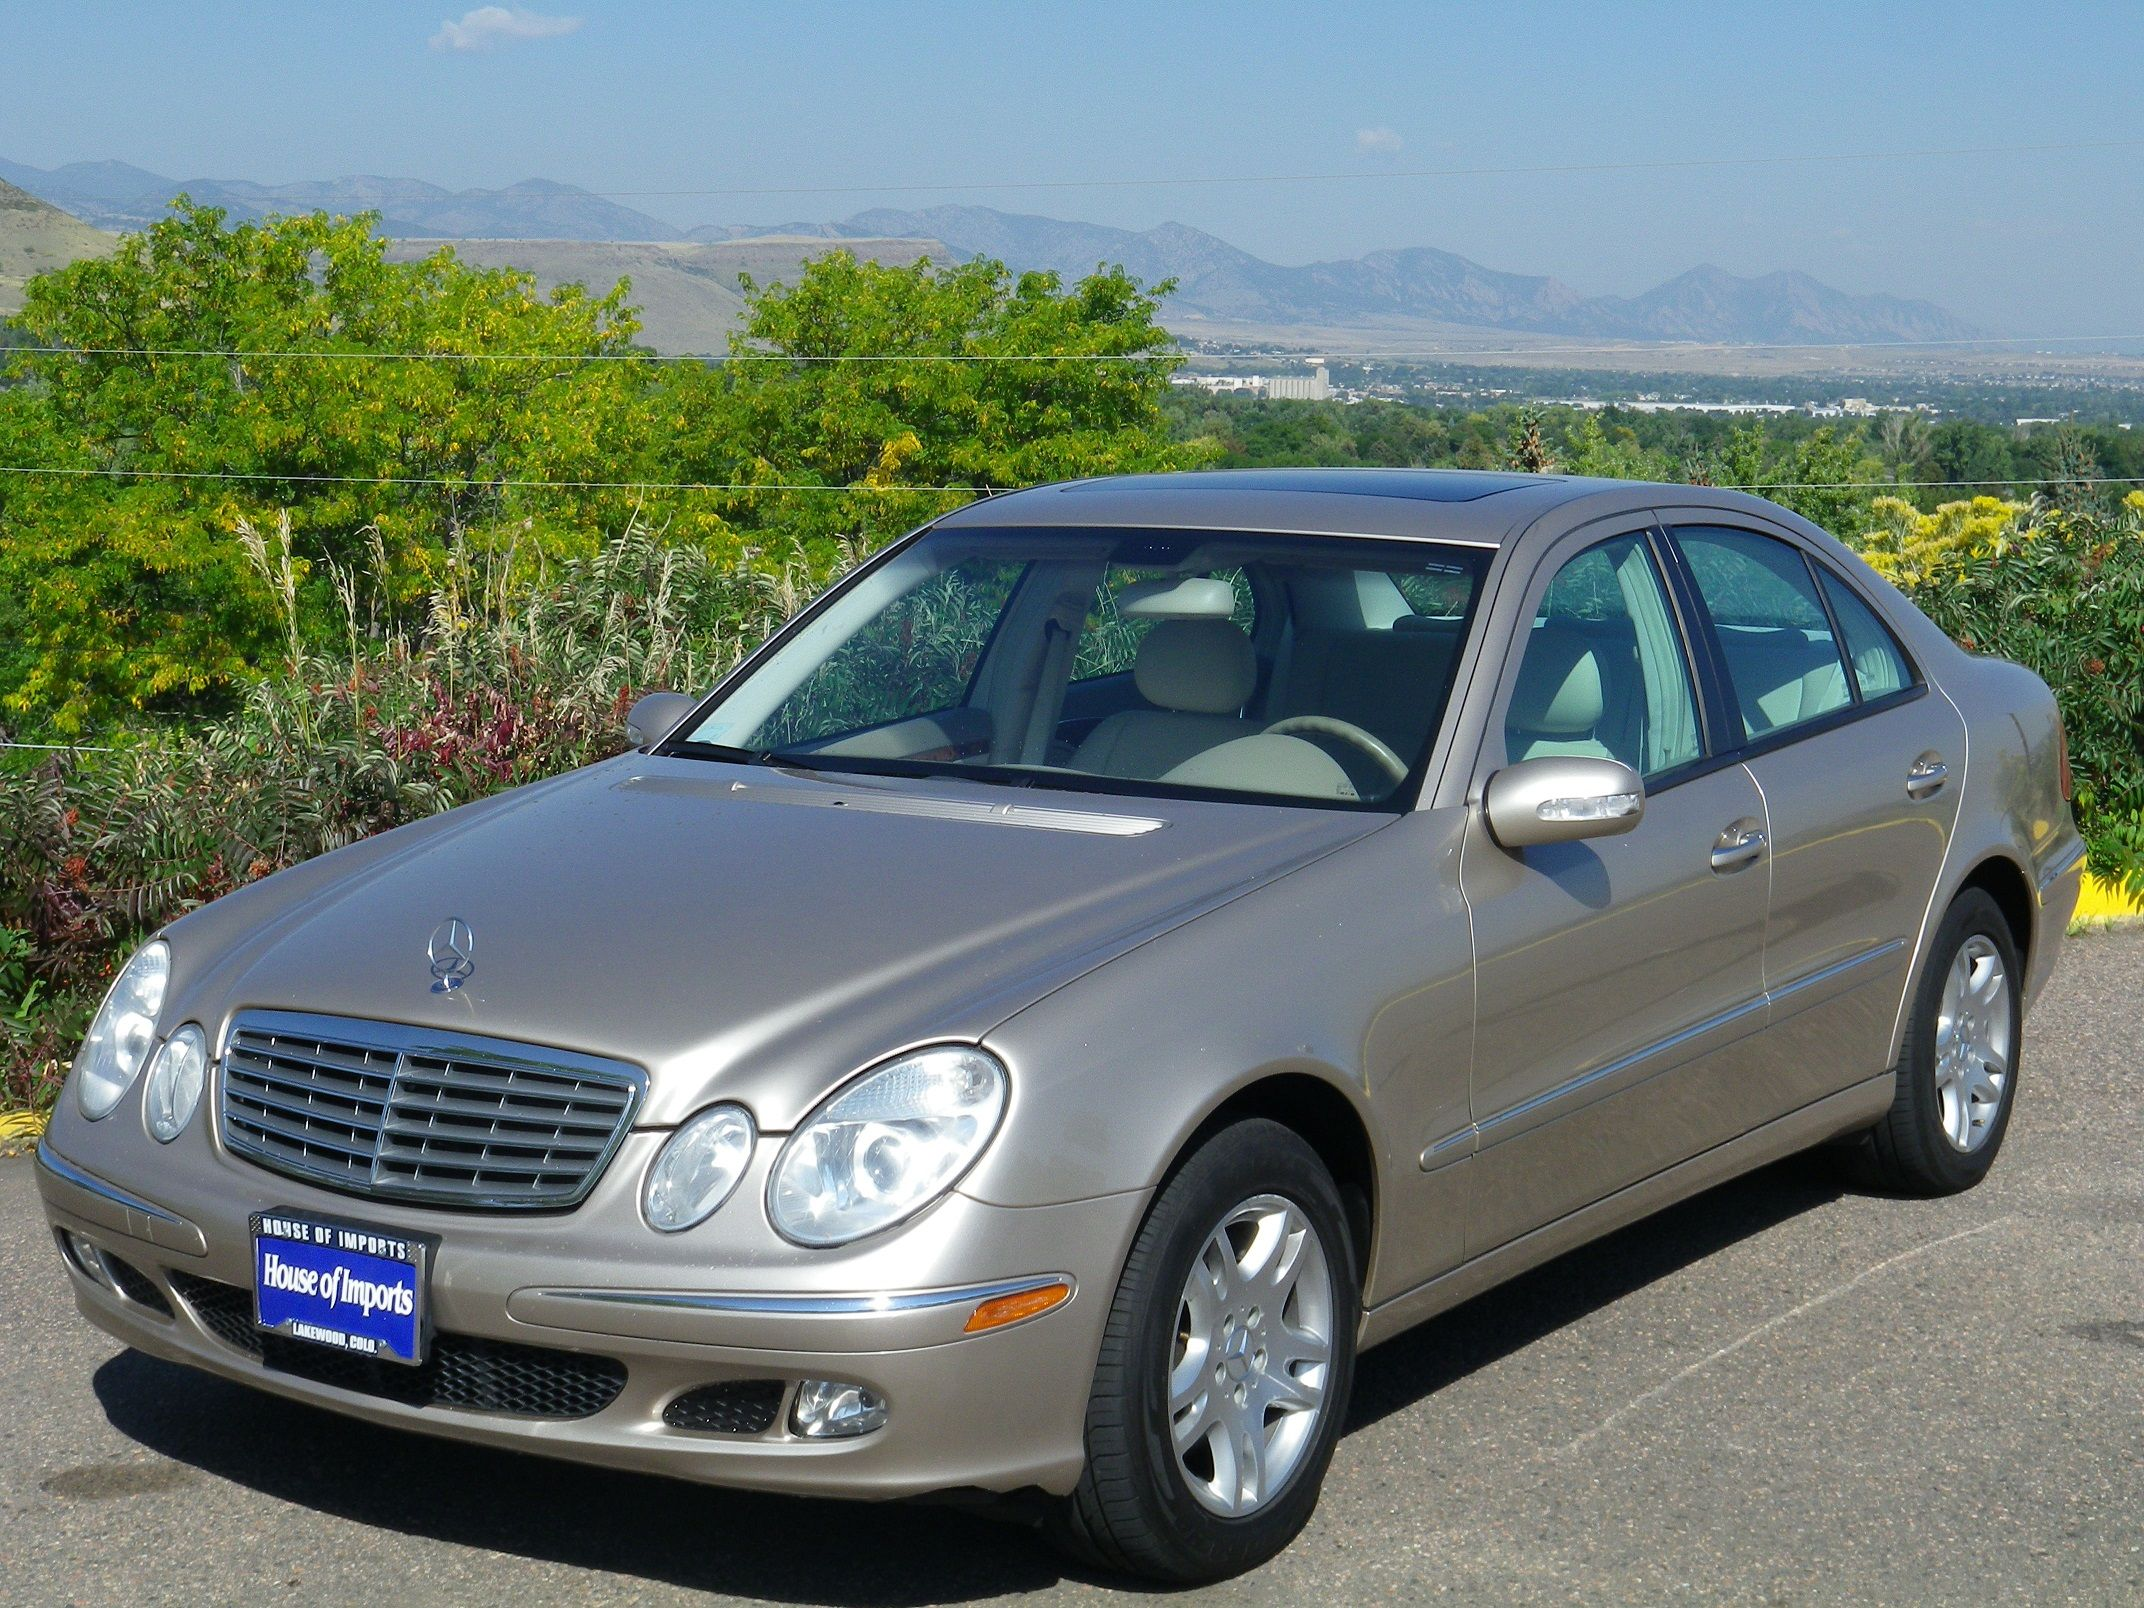 hight resolution of 2004 mercedes benz e320 4 matic 103 035 miles v i n wdbuf82j44x153514 stock c450 desert silver metallic interior stone leather